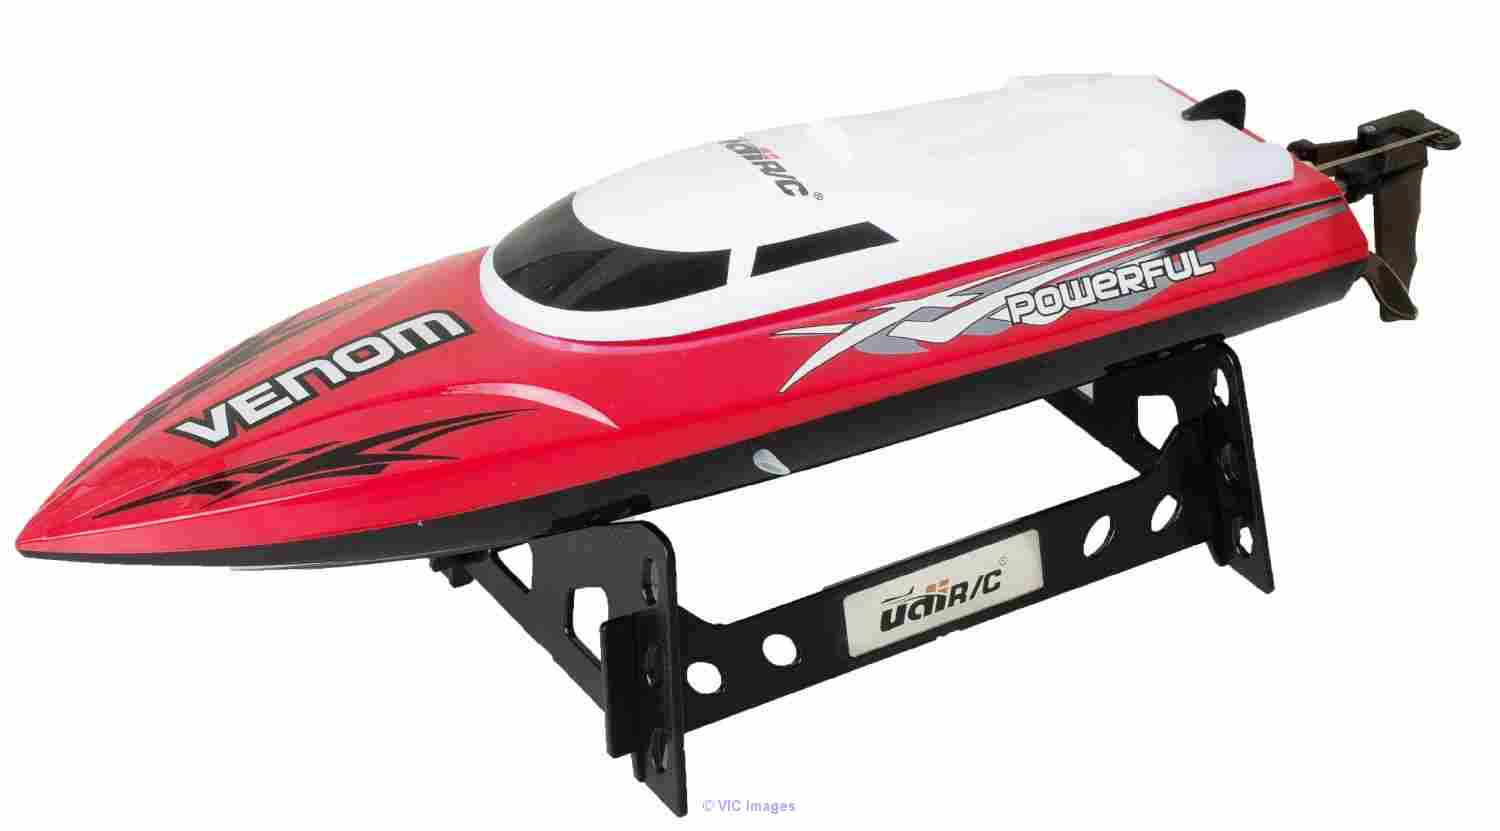 UDI001 Venom Remote Control Boat for Pools, Lakes and Outdoor Adventur Ottawa, Ontario, Canada Classifieds